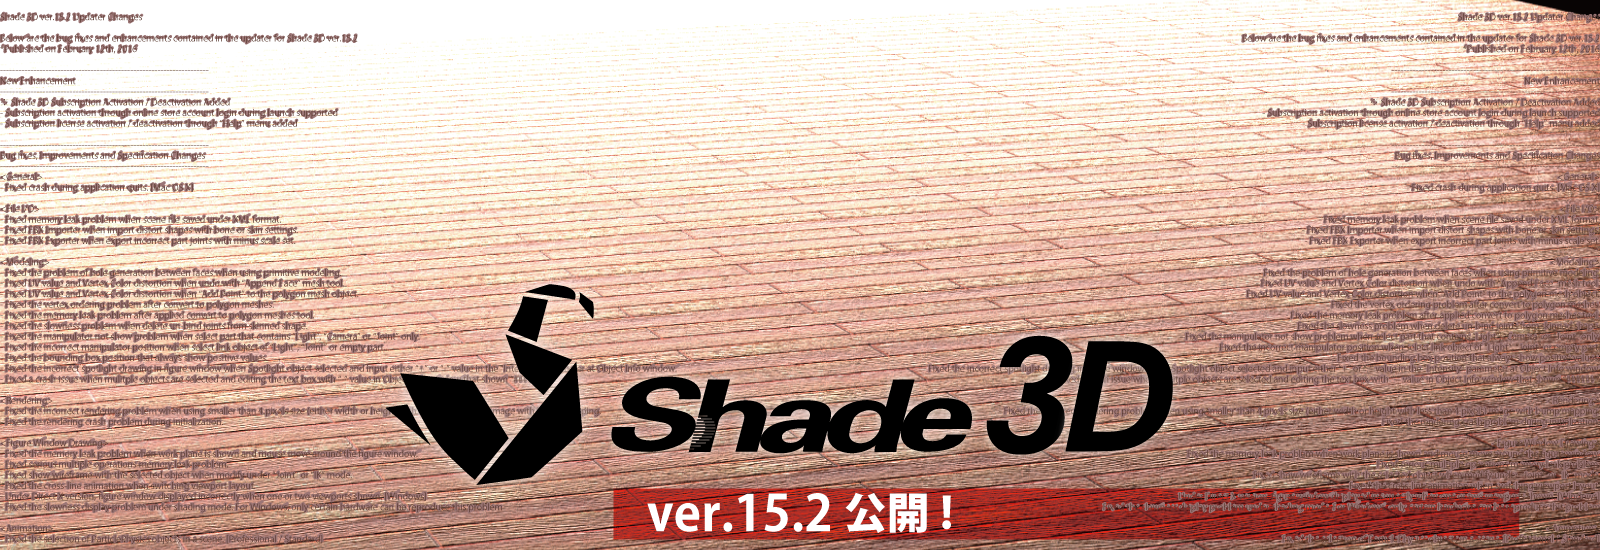 Shade 3D ver.15.2 release